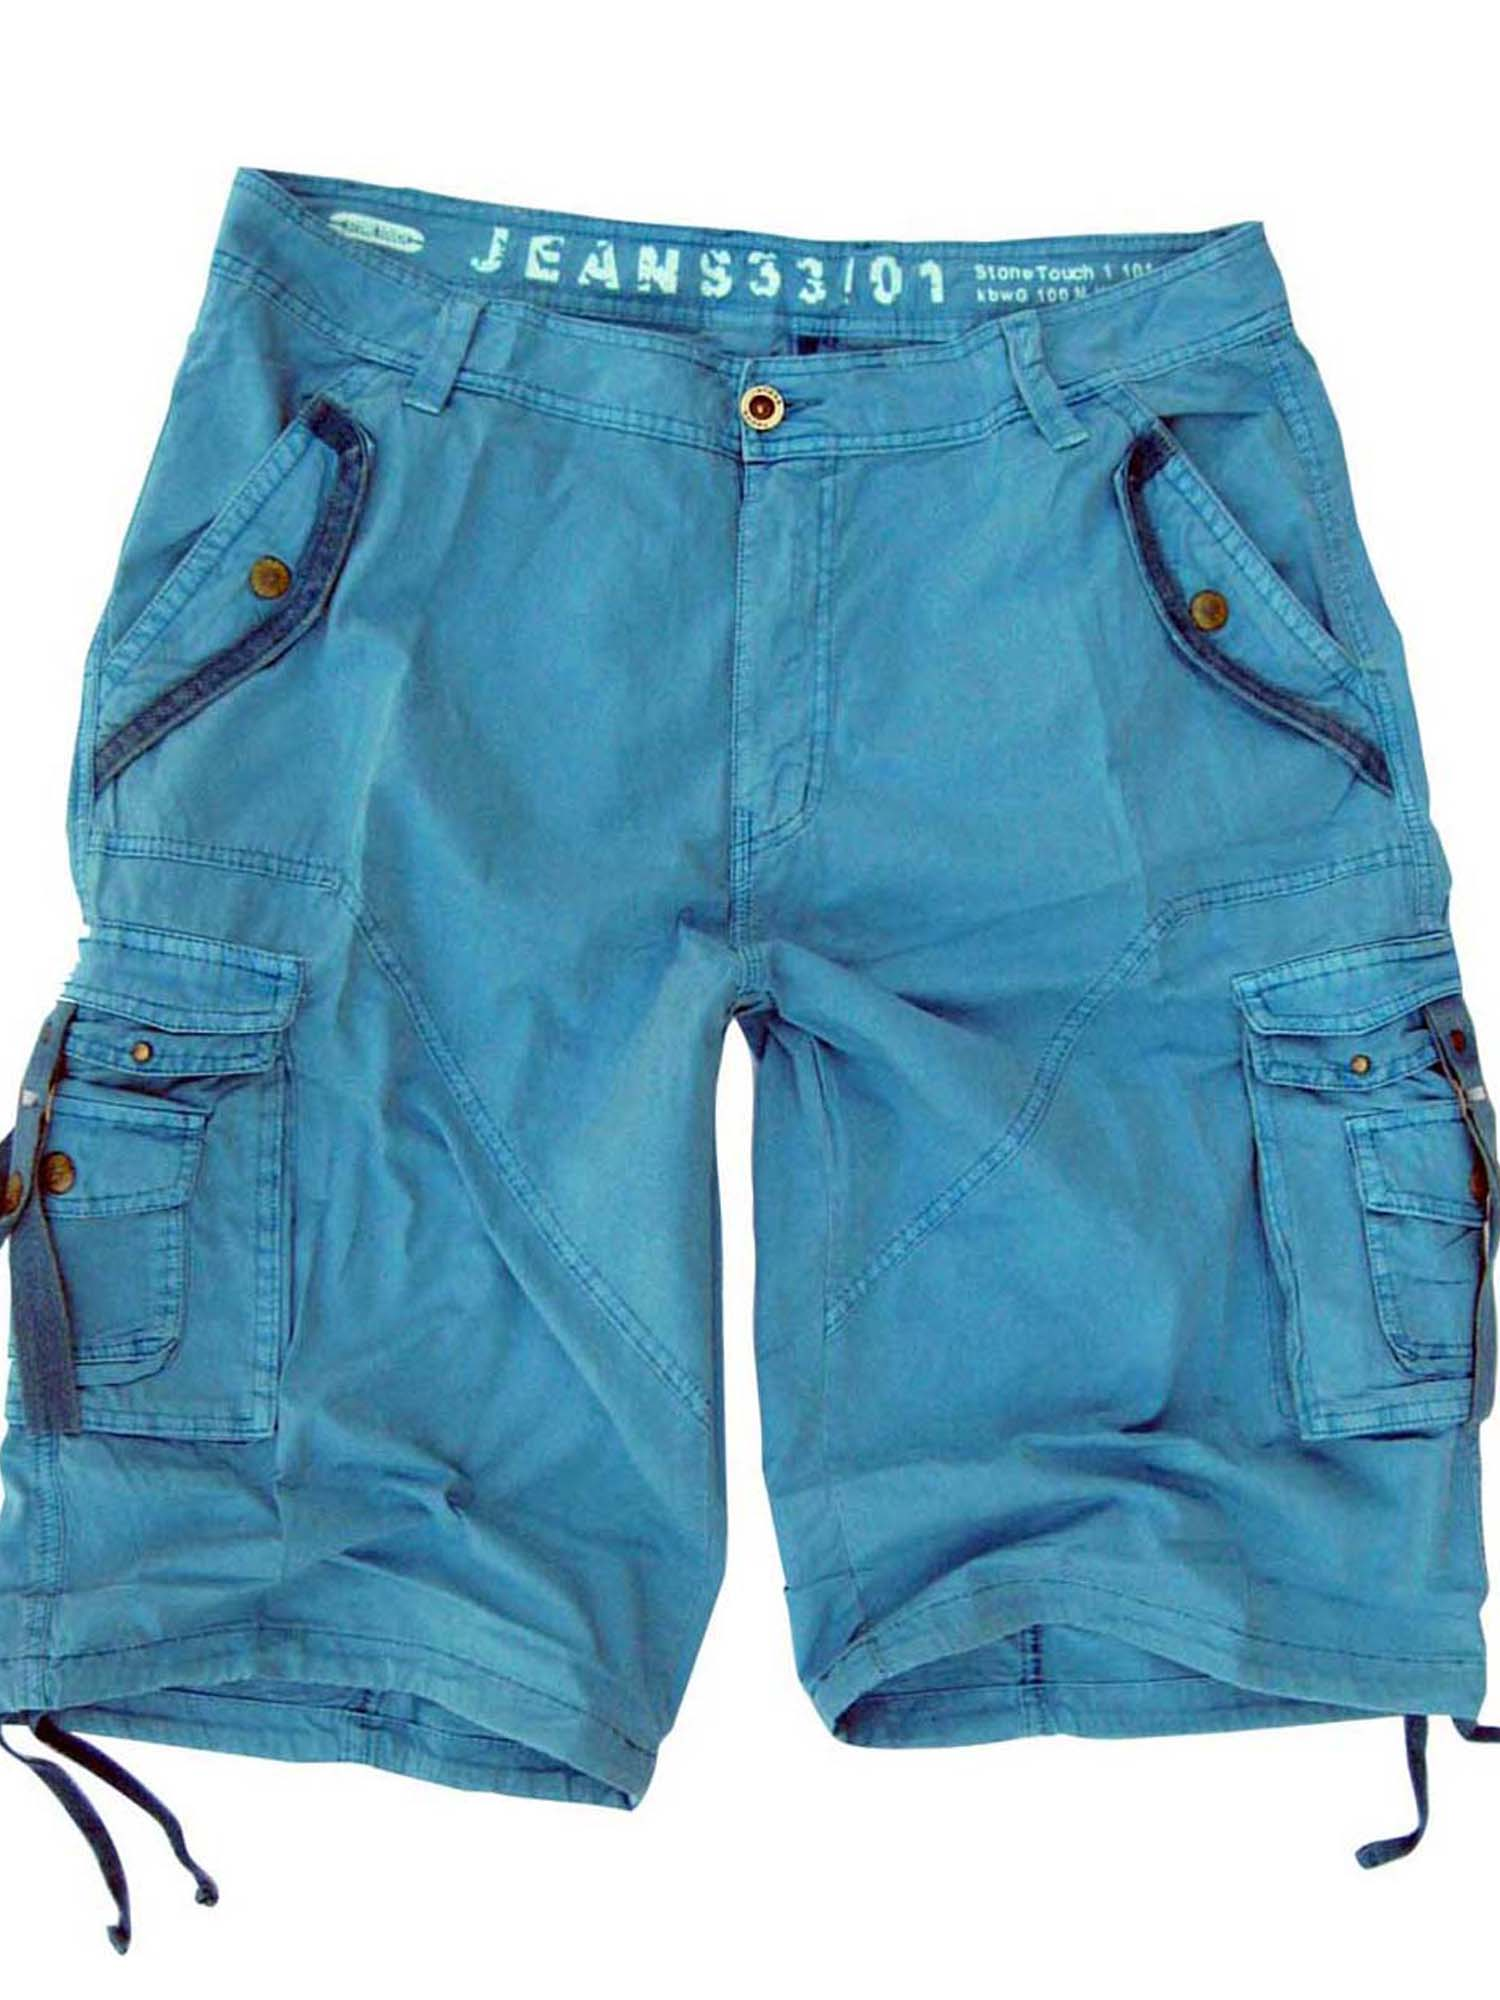 Mens Military Style Light Blue Cargo Shorts #A8s Size 44